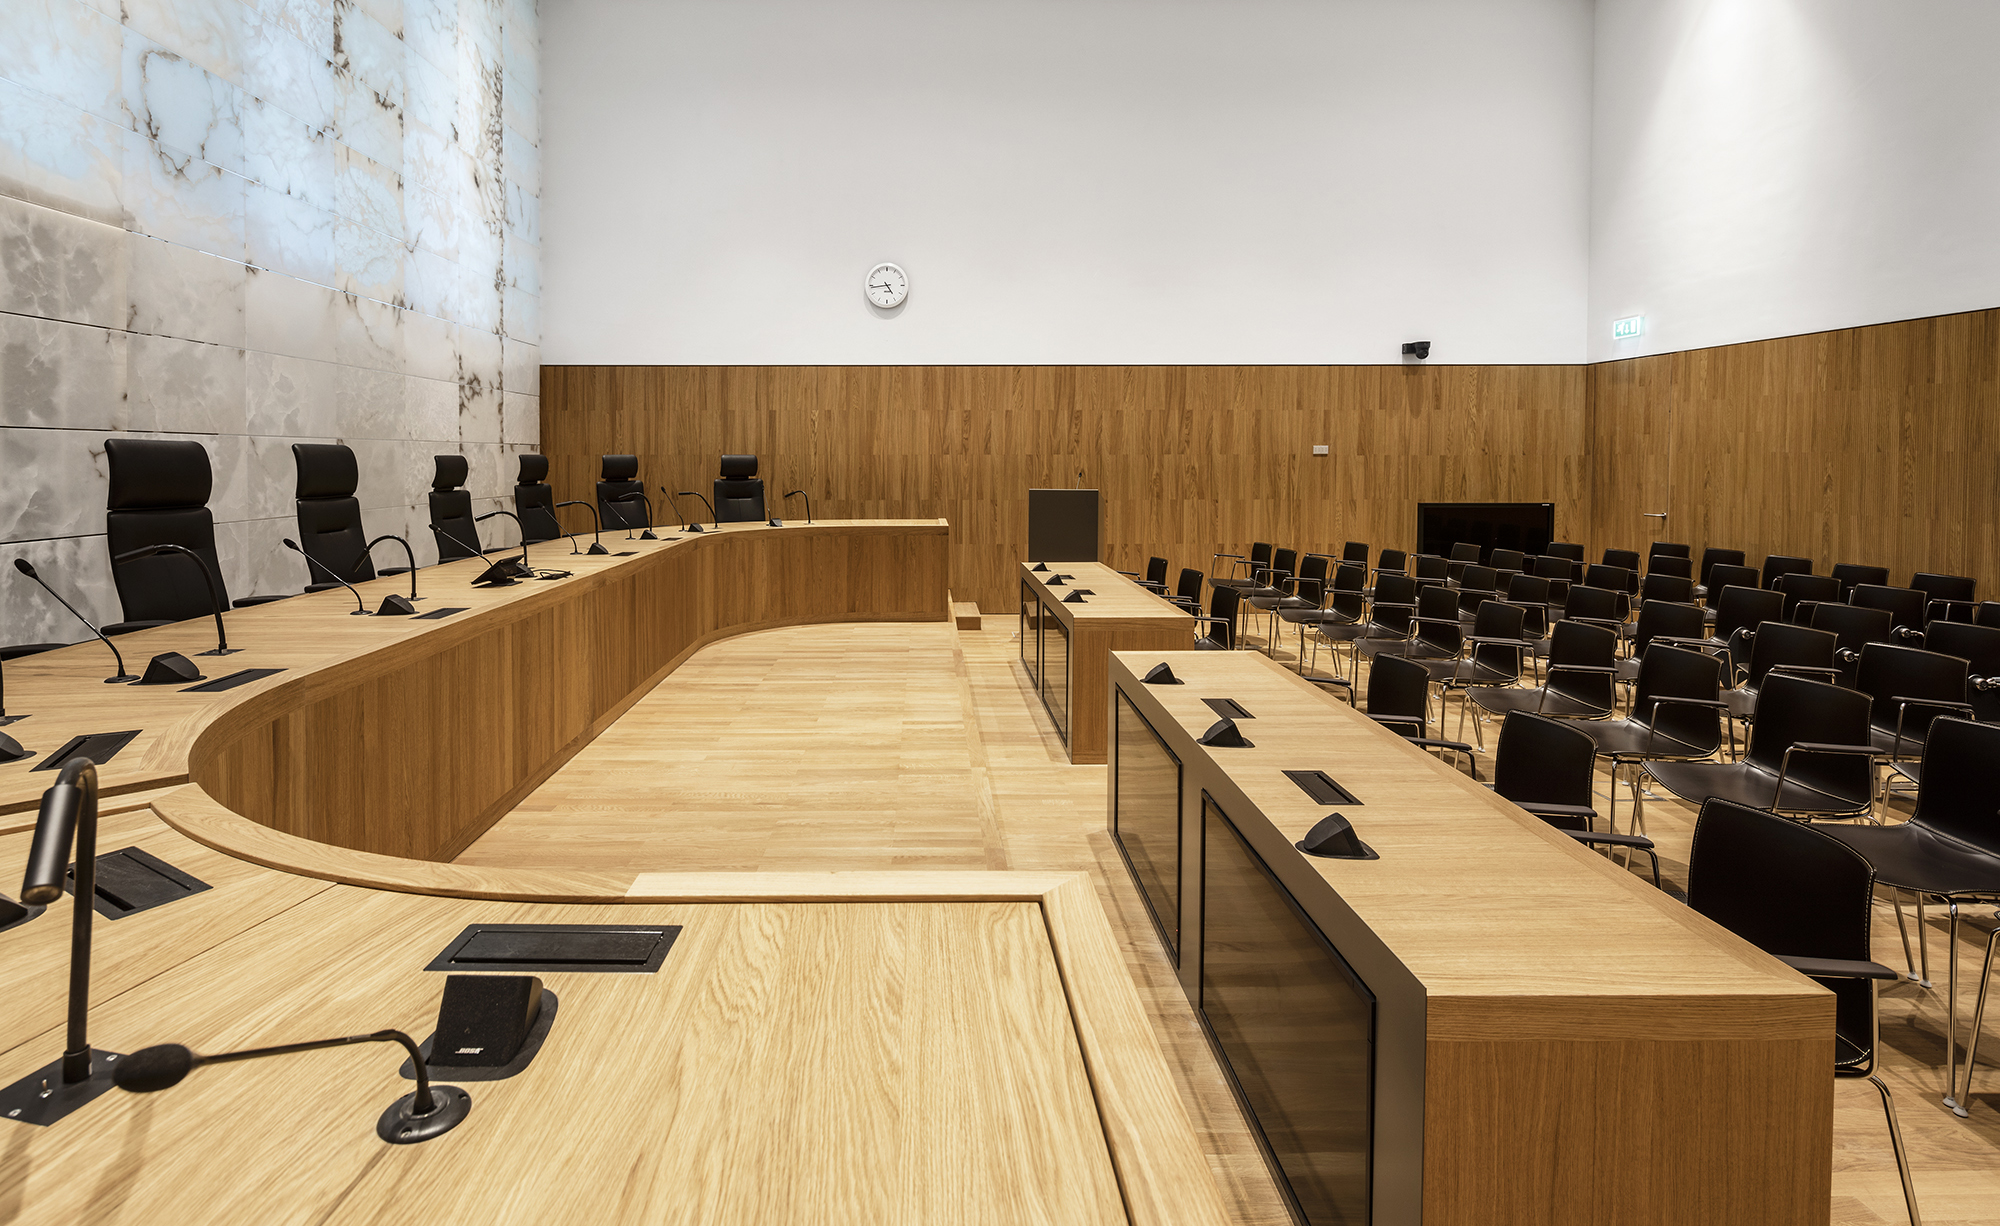 KAAN architects design The Hague Supreme Court Wallpaper 2000x1226